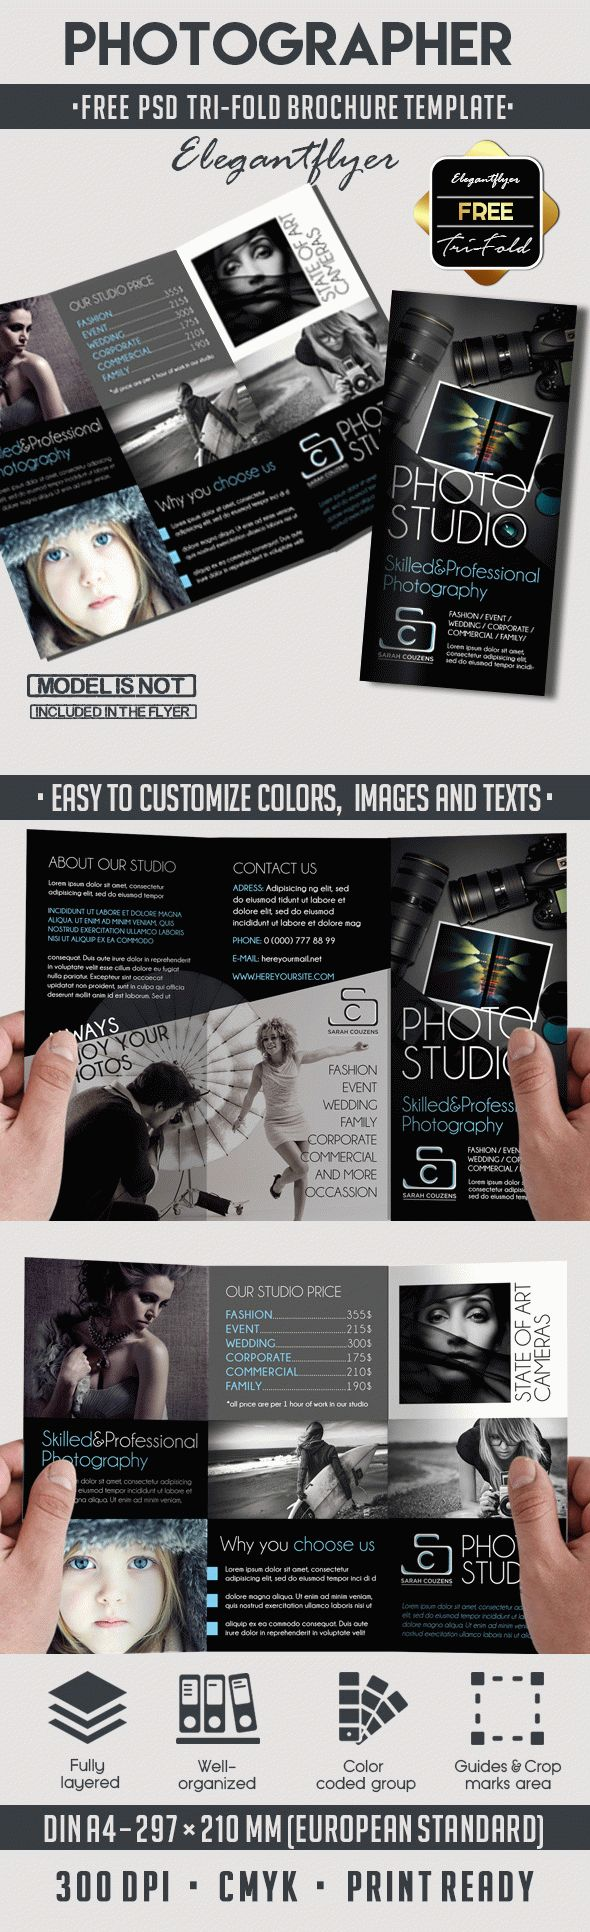 Photographer – Free Tri-Fold PSD Brochure Template